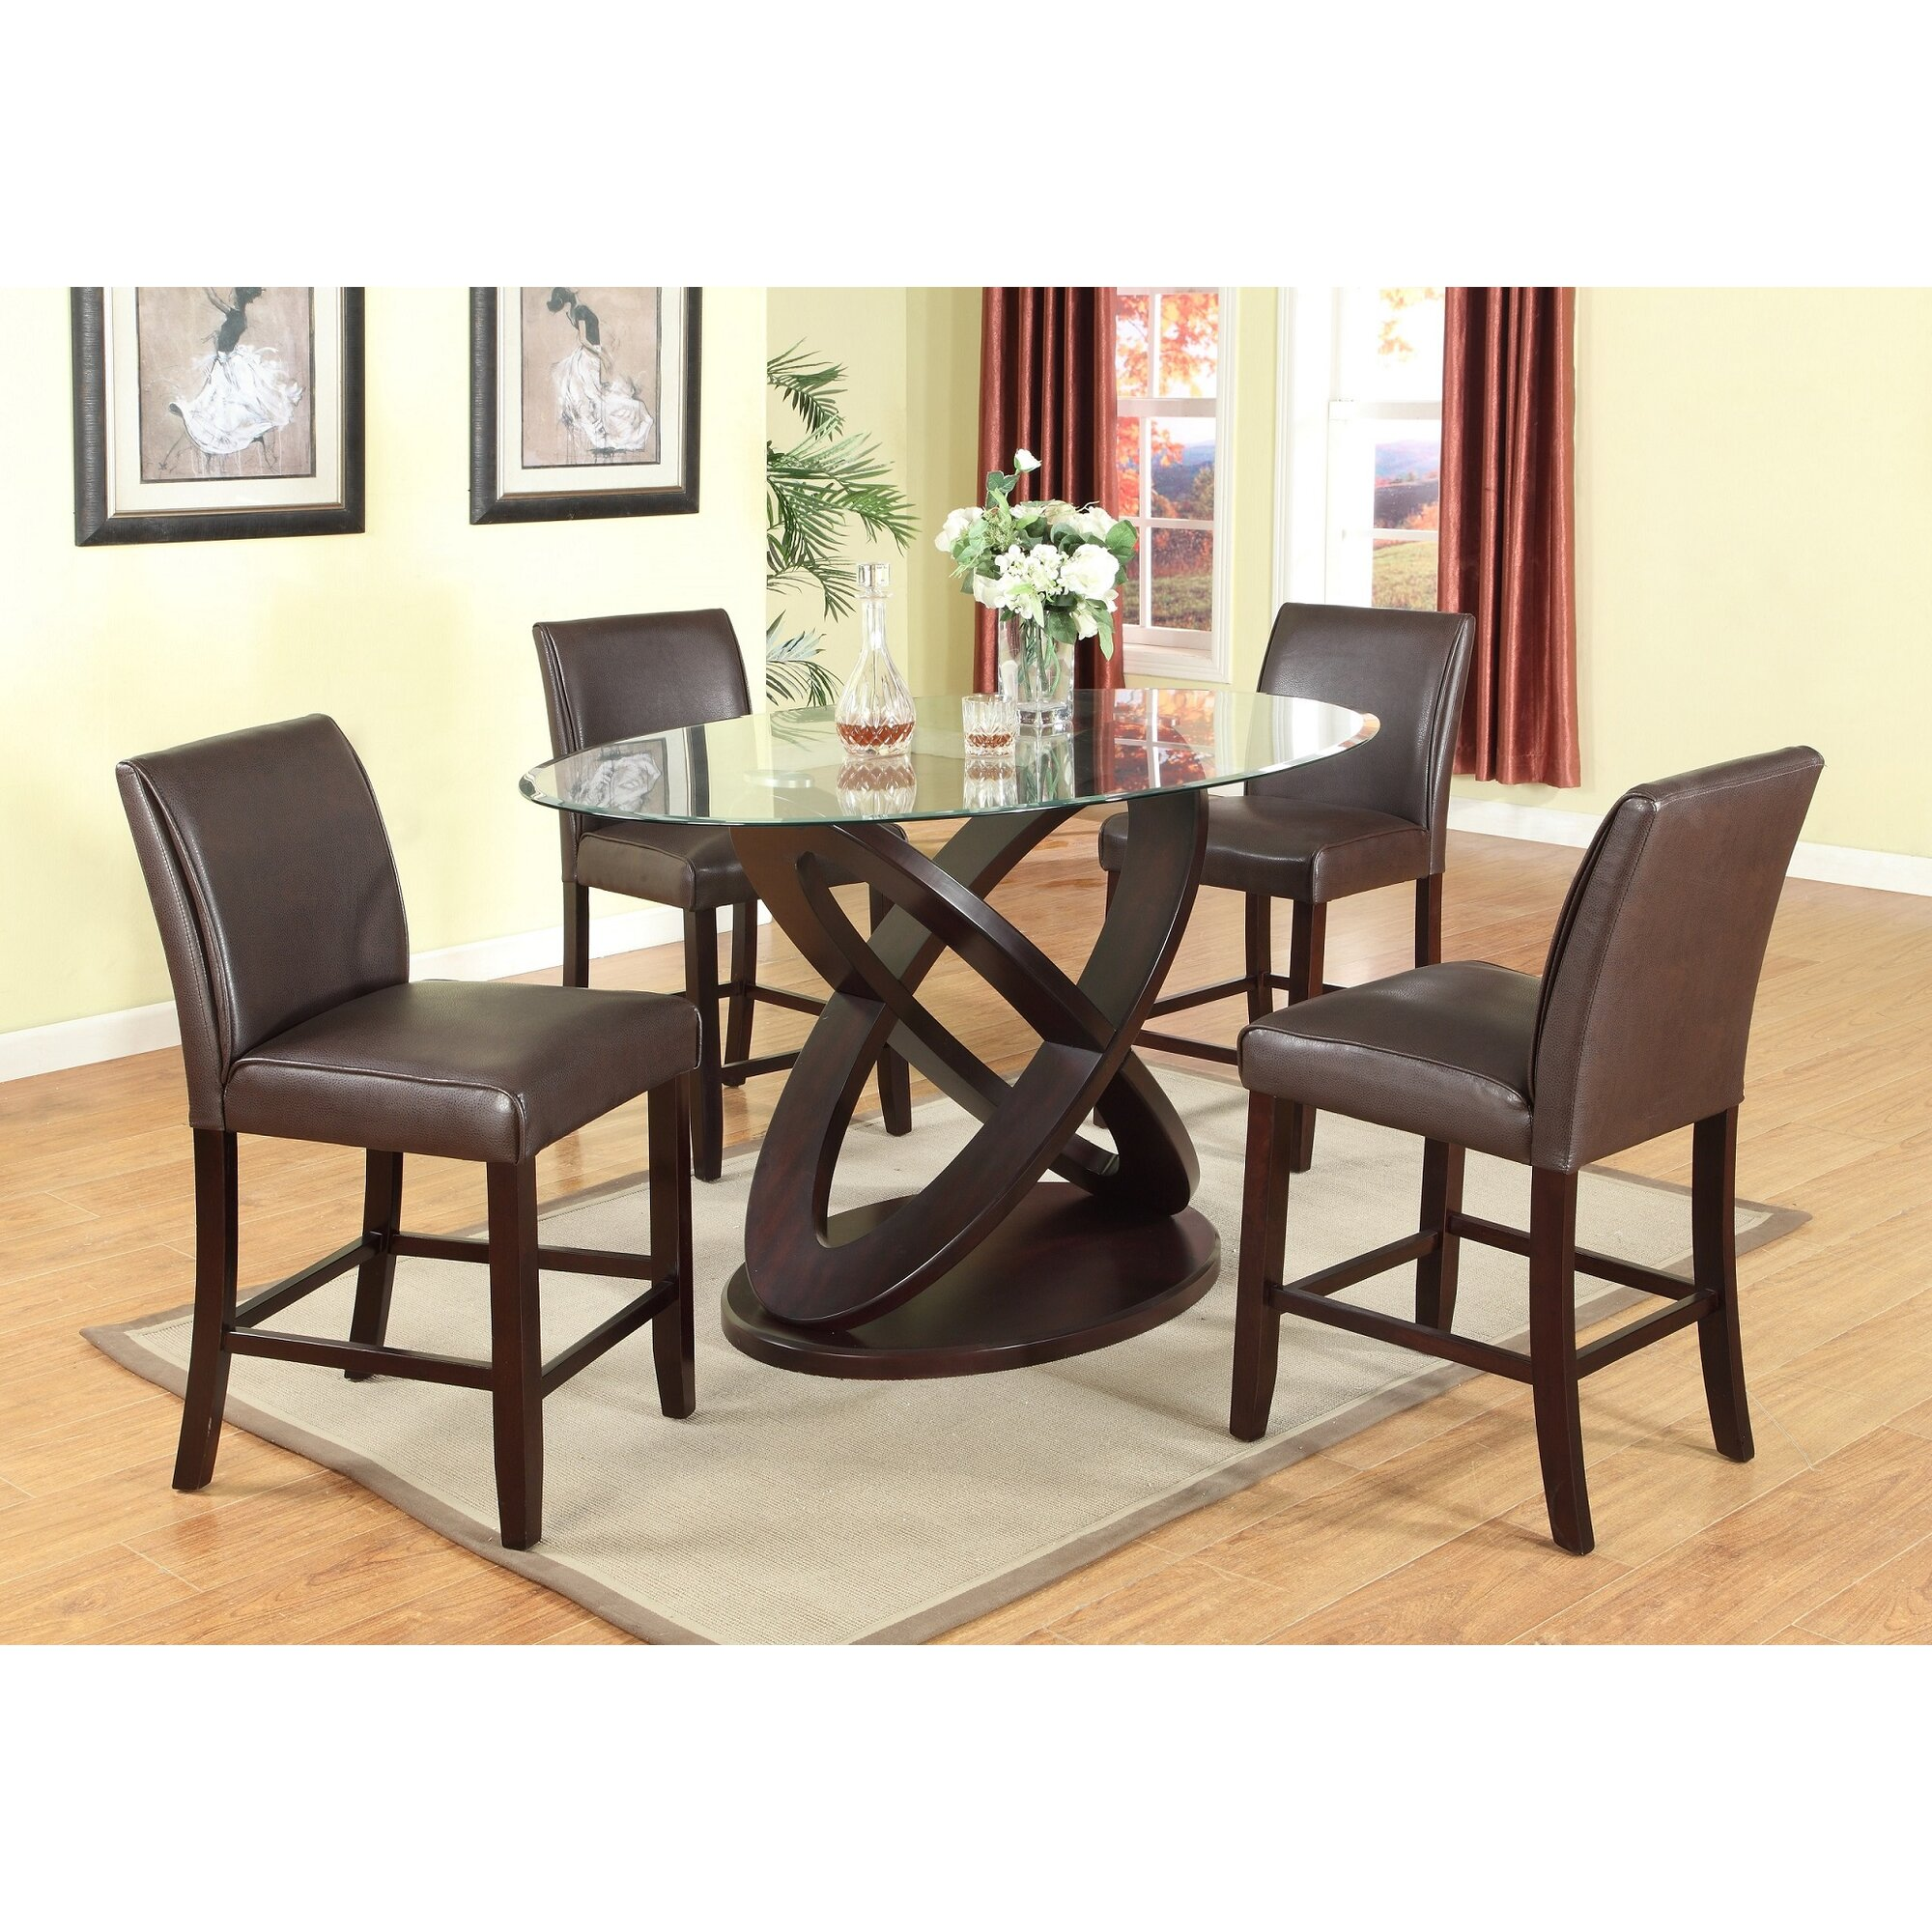 Roundhill Furniture Cicicol 5 Piece Counter Height Dining Set ...